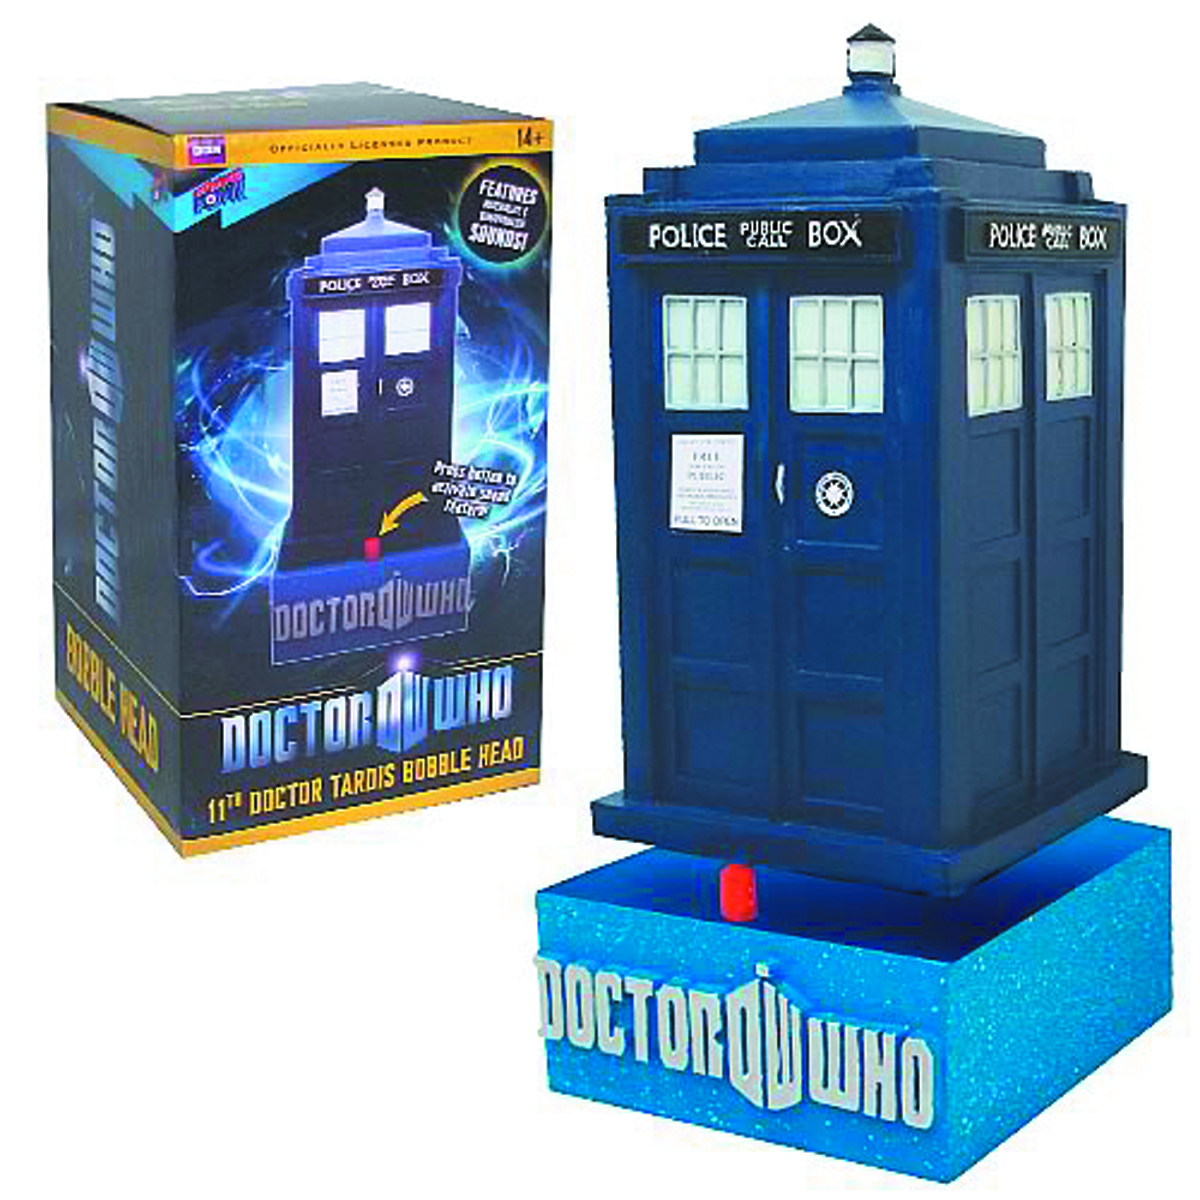 DOCTOR WHO 50TH ANN TARDIS BOBBLE HEAD W/SOUND